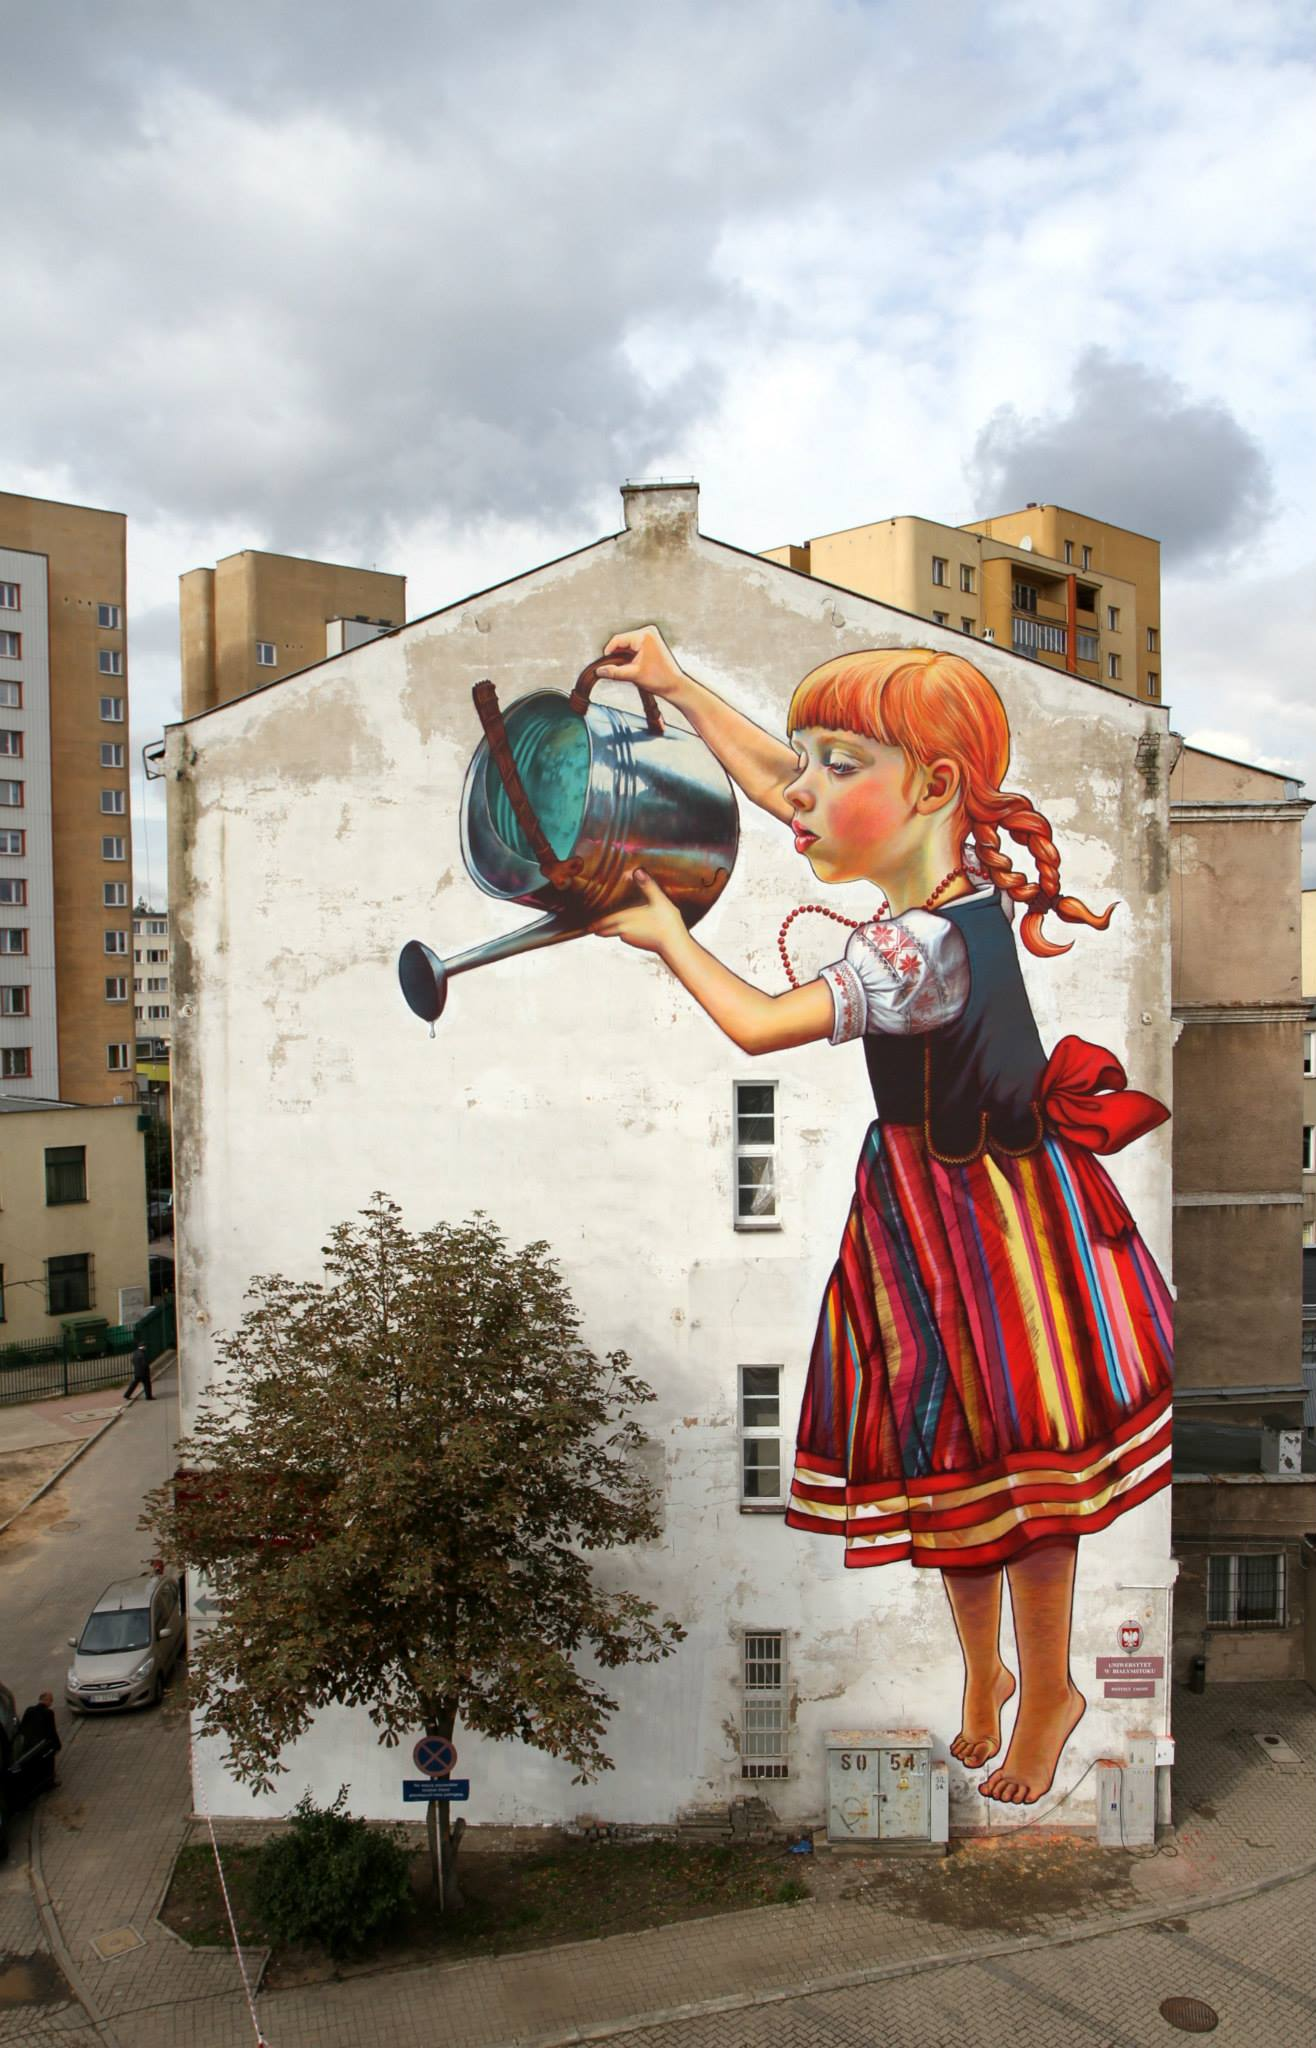 Mural by Natalii Rak at Folk on the Street in Białymstoku, Poland 3